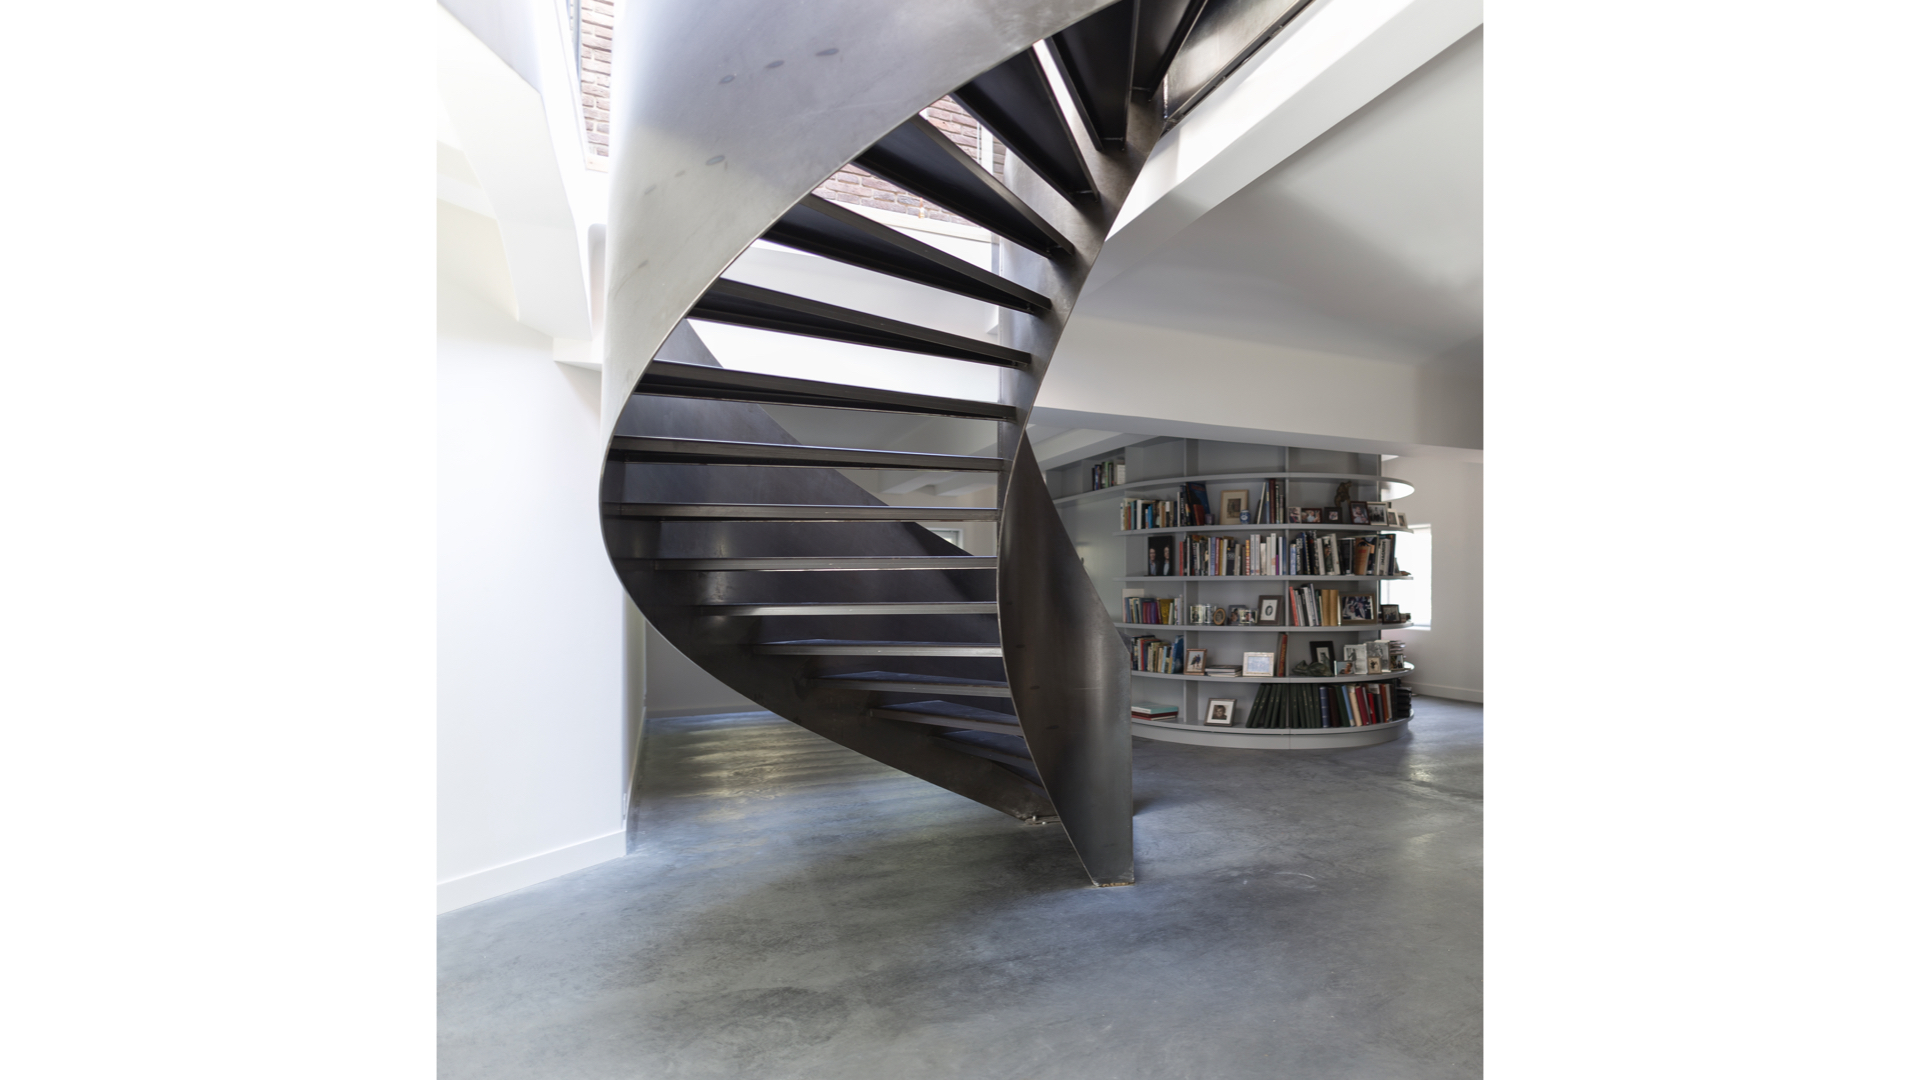 Curved Raw Steel Staircase iii | © Bernardo Guillermo Studio